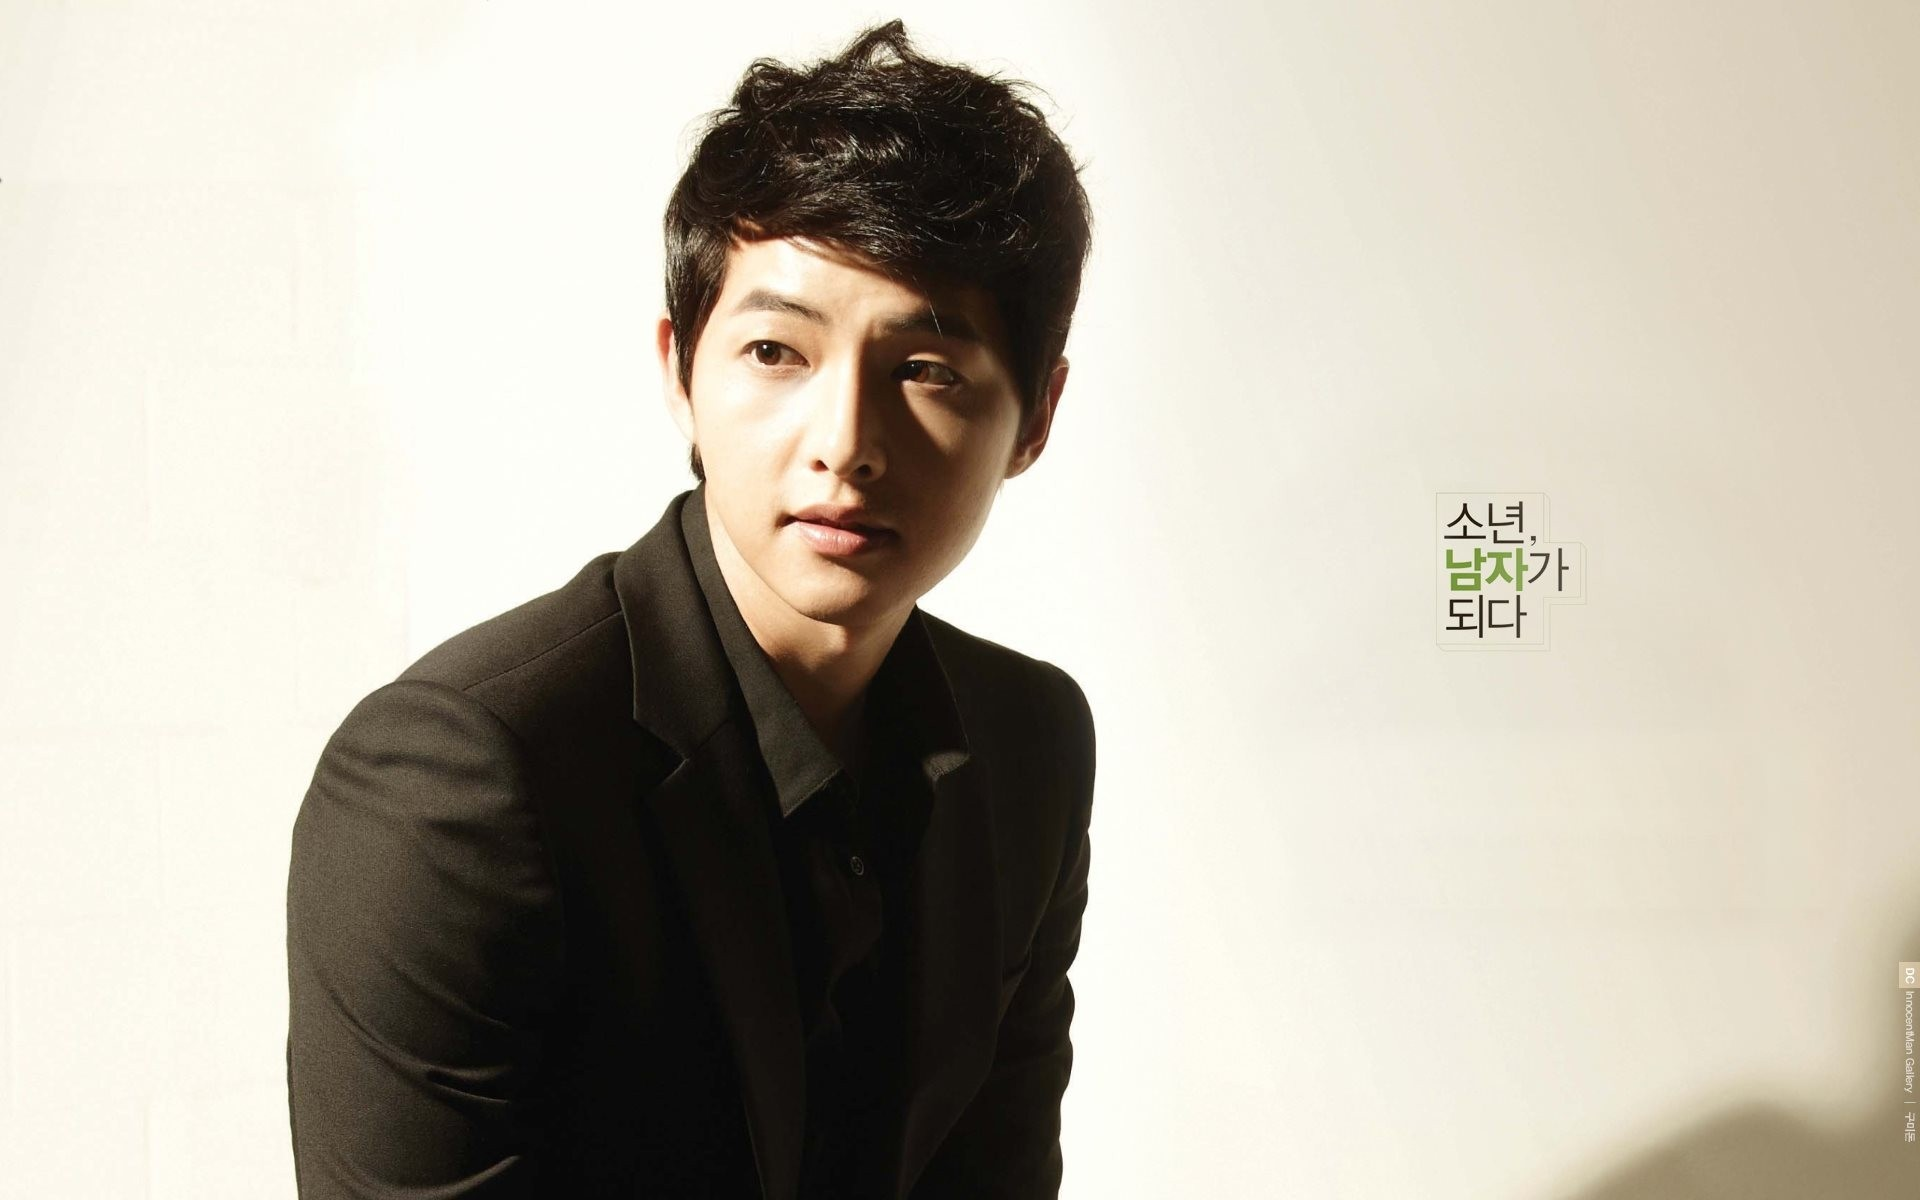 Song Joong Ki Wallpapers High Resolution And Quality Download